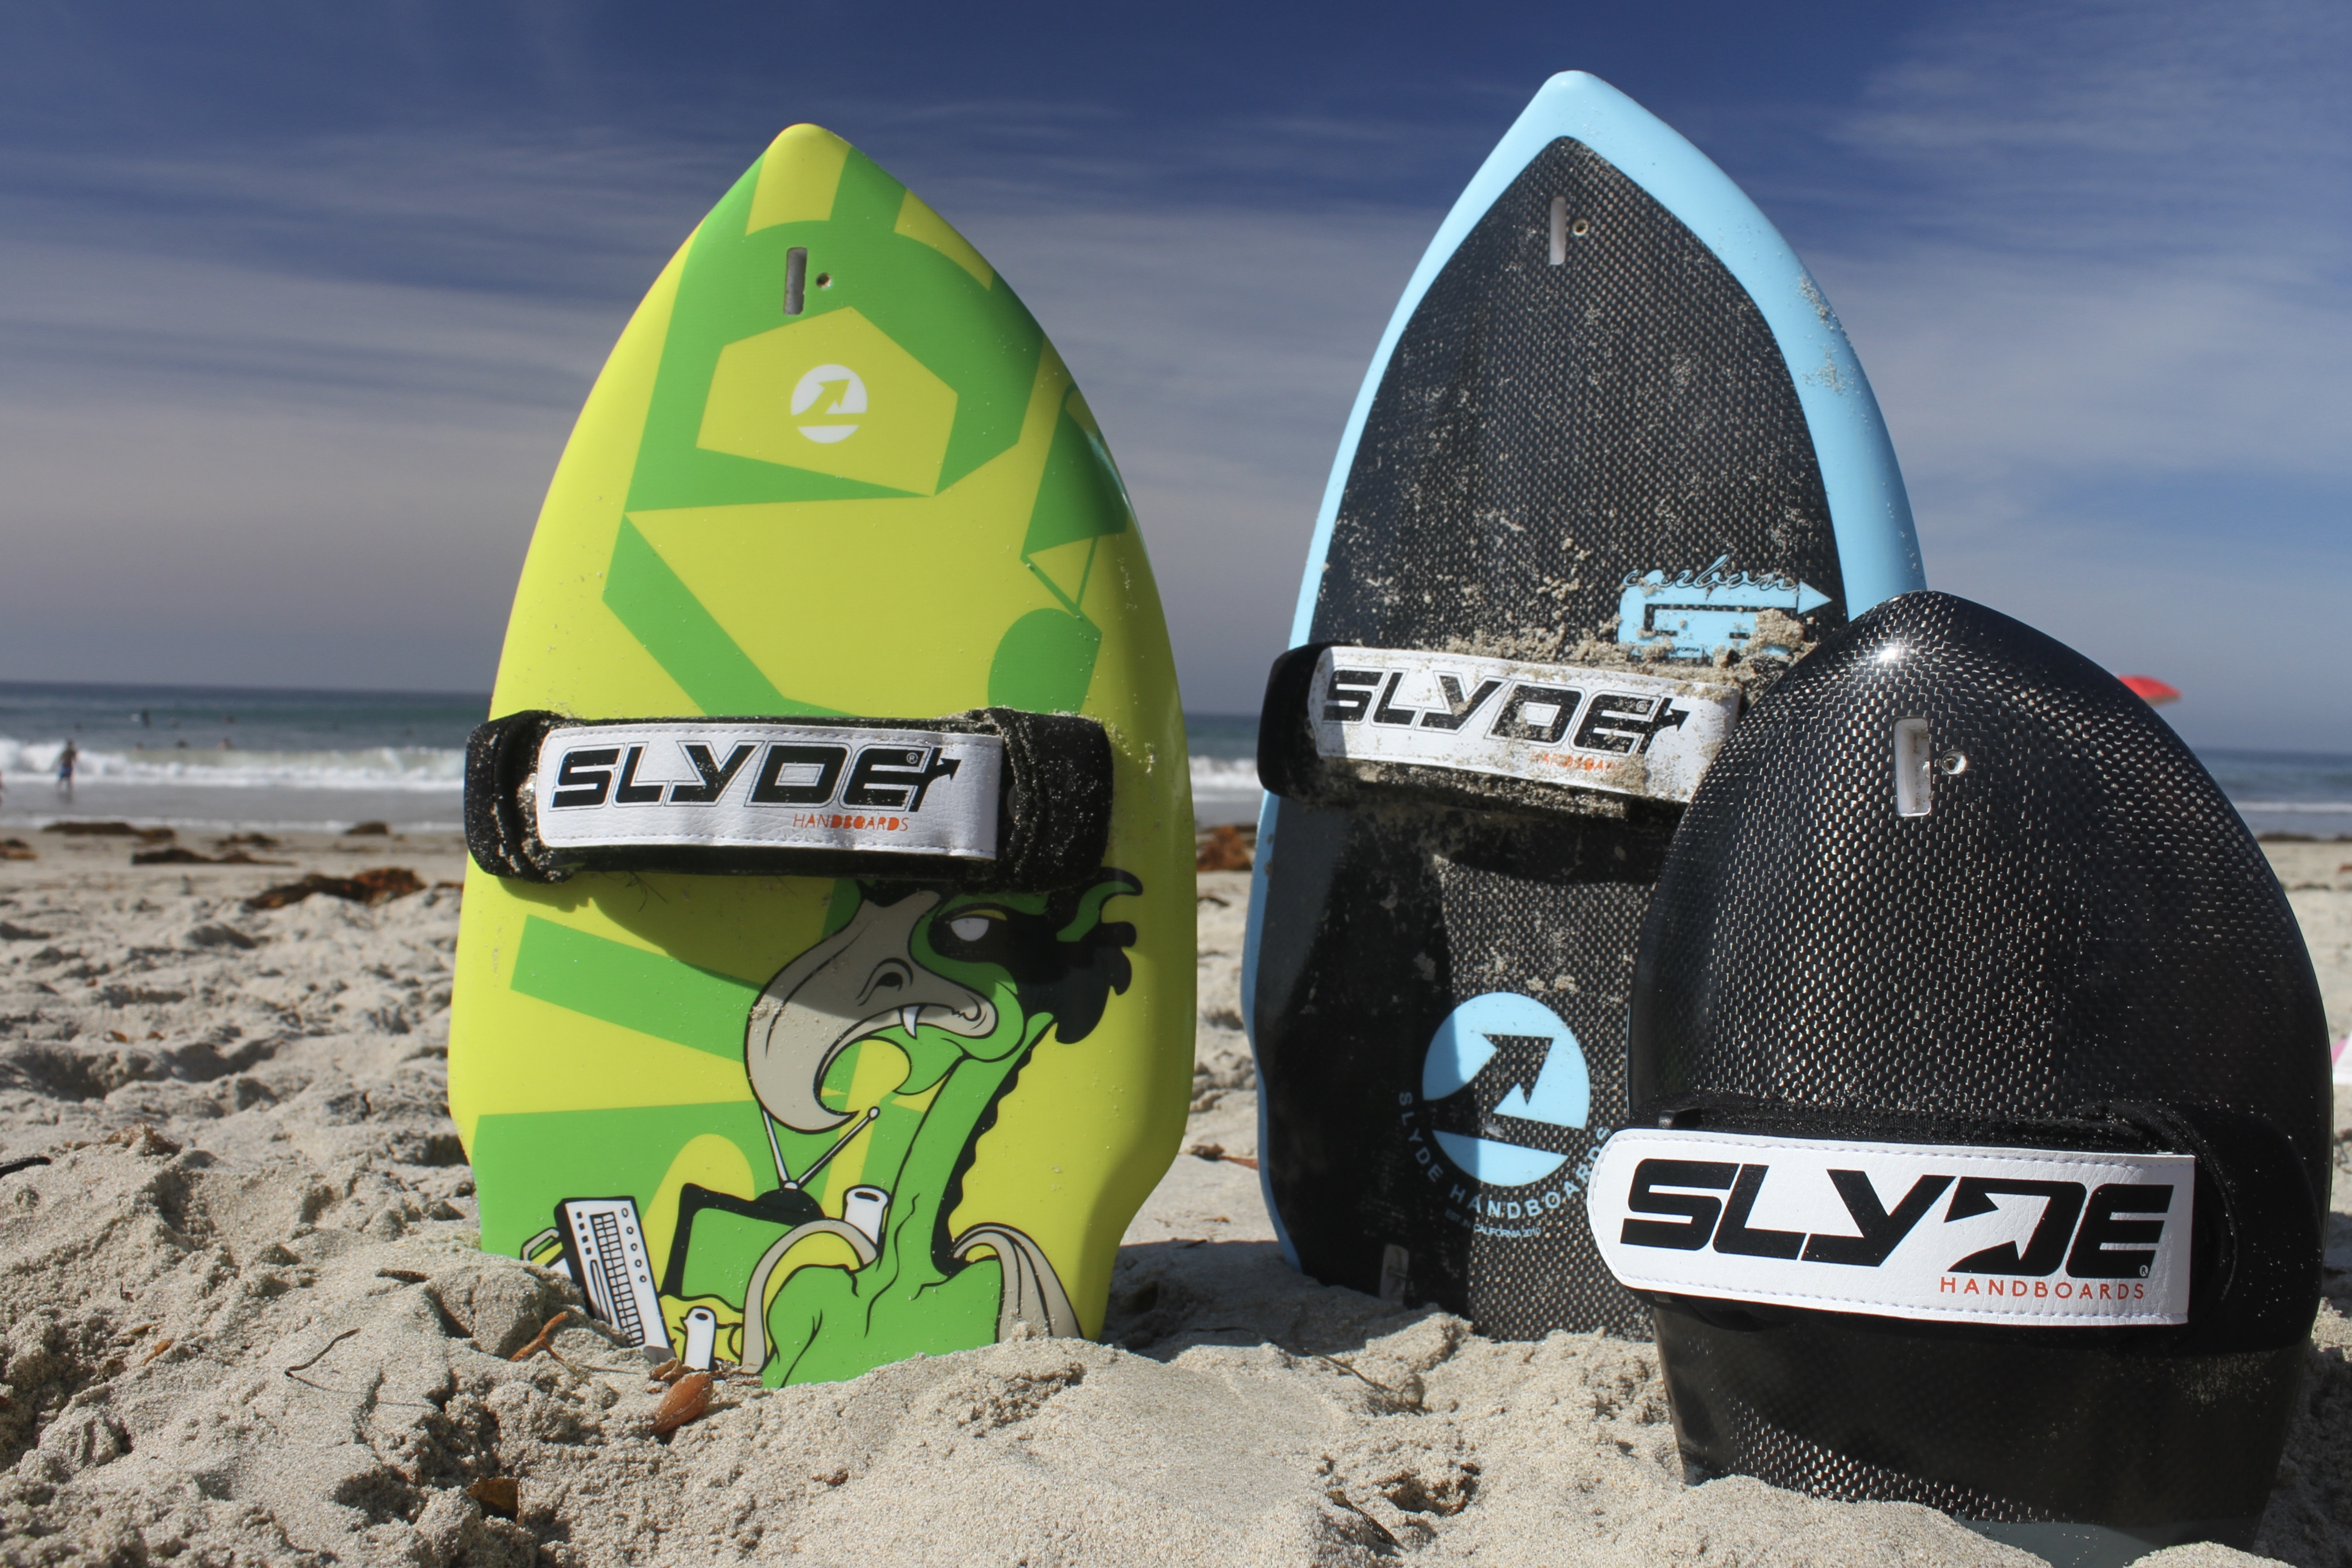 Pictured are The Wedge, The Wedge featuring a carbon fiber deck and The Bula